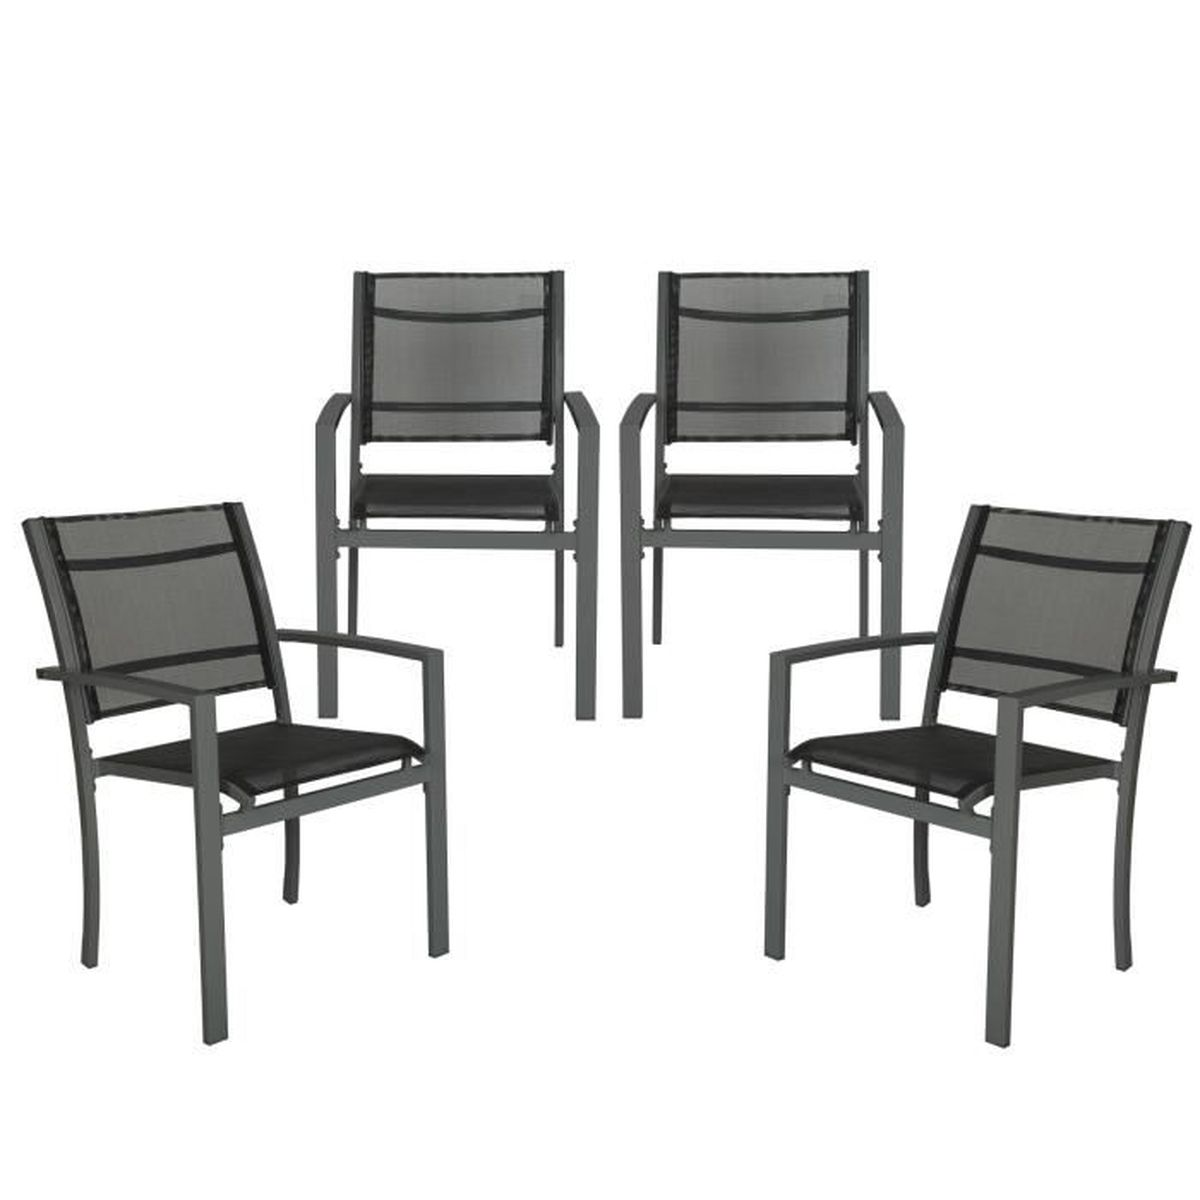 4 chaises de jardin de camping ou de salon en m tal et. Black Bedroom Furniture Sets. Home Design Ideas